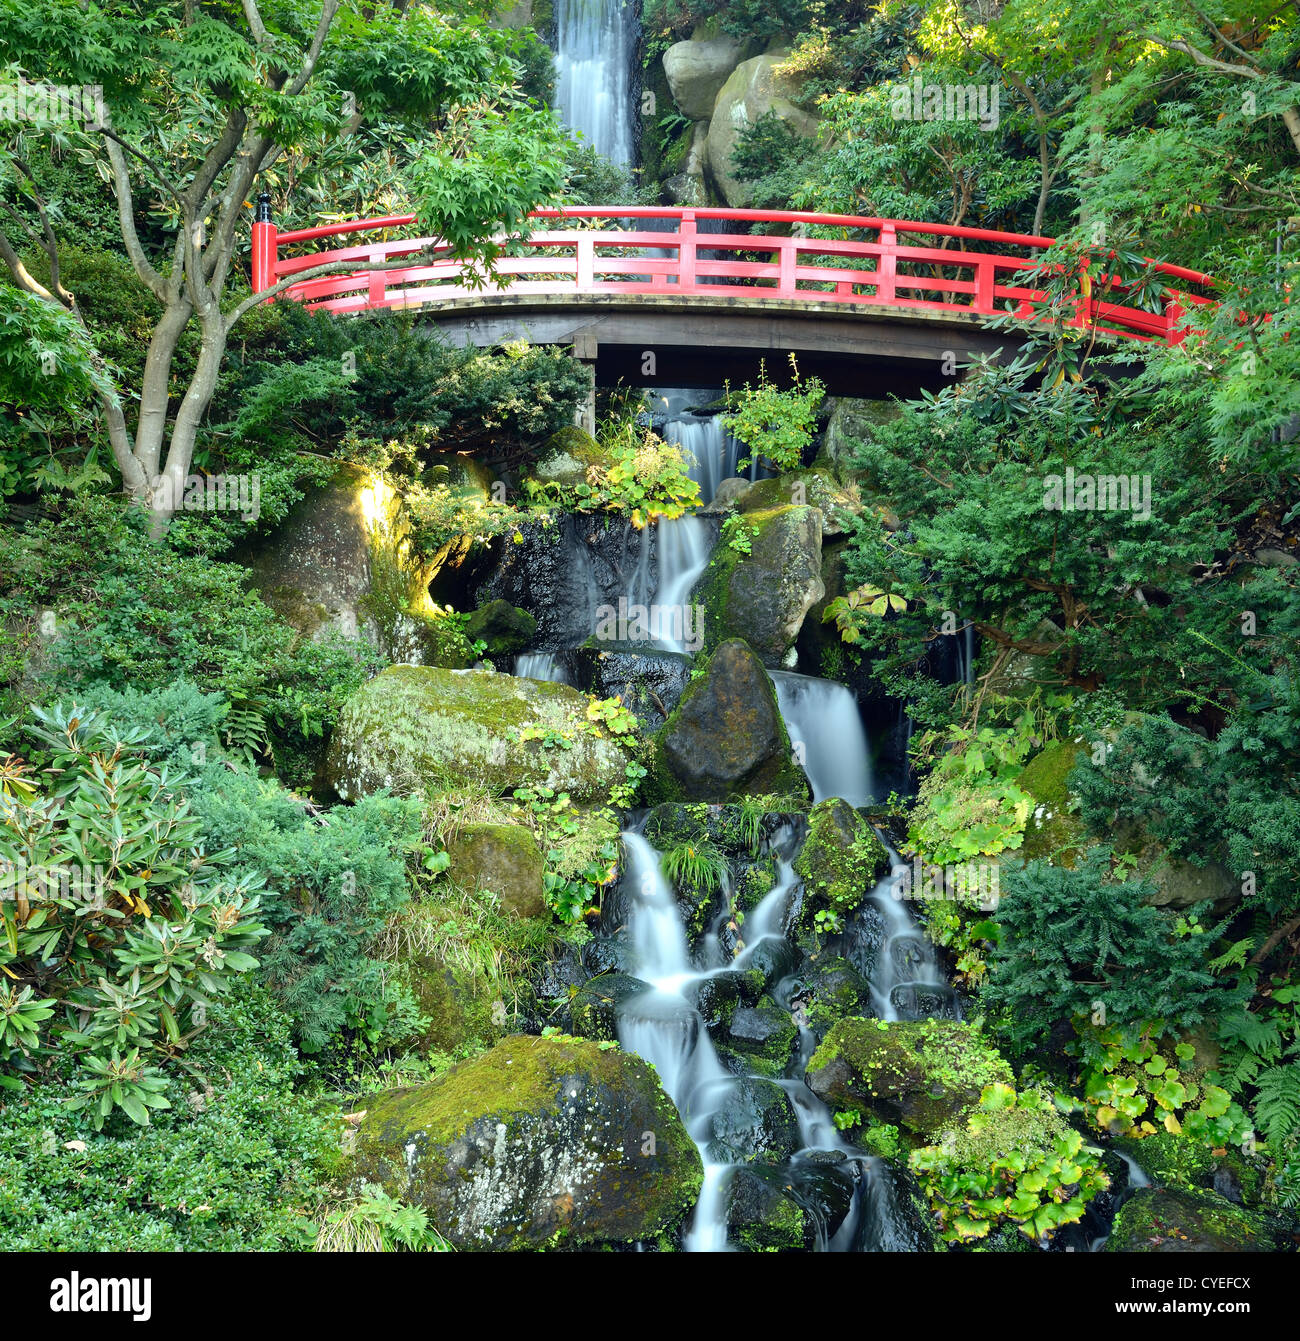 Scenic Japanese waterfall in Hirosaki, Japan. - Stock Image